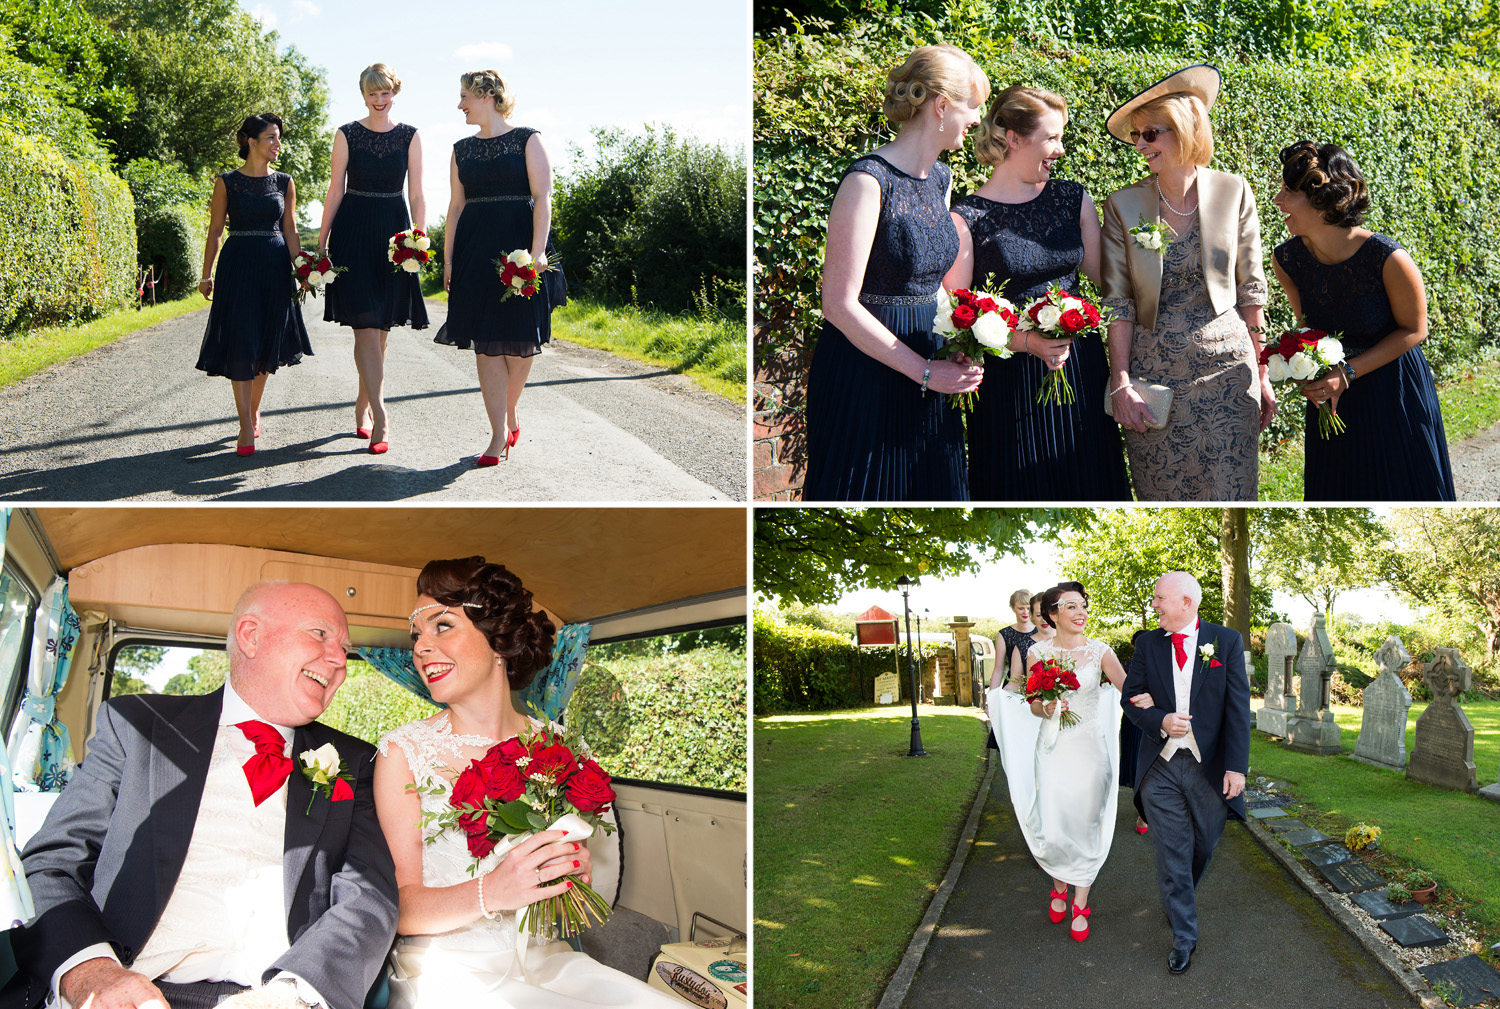 Photographs of the bridesmaids, bride and father of the bride arriving at Church